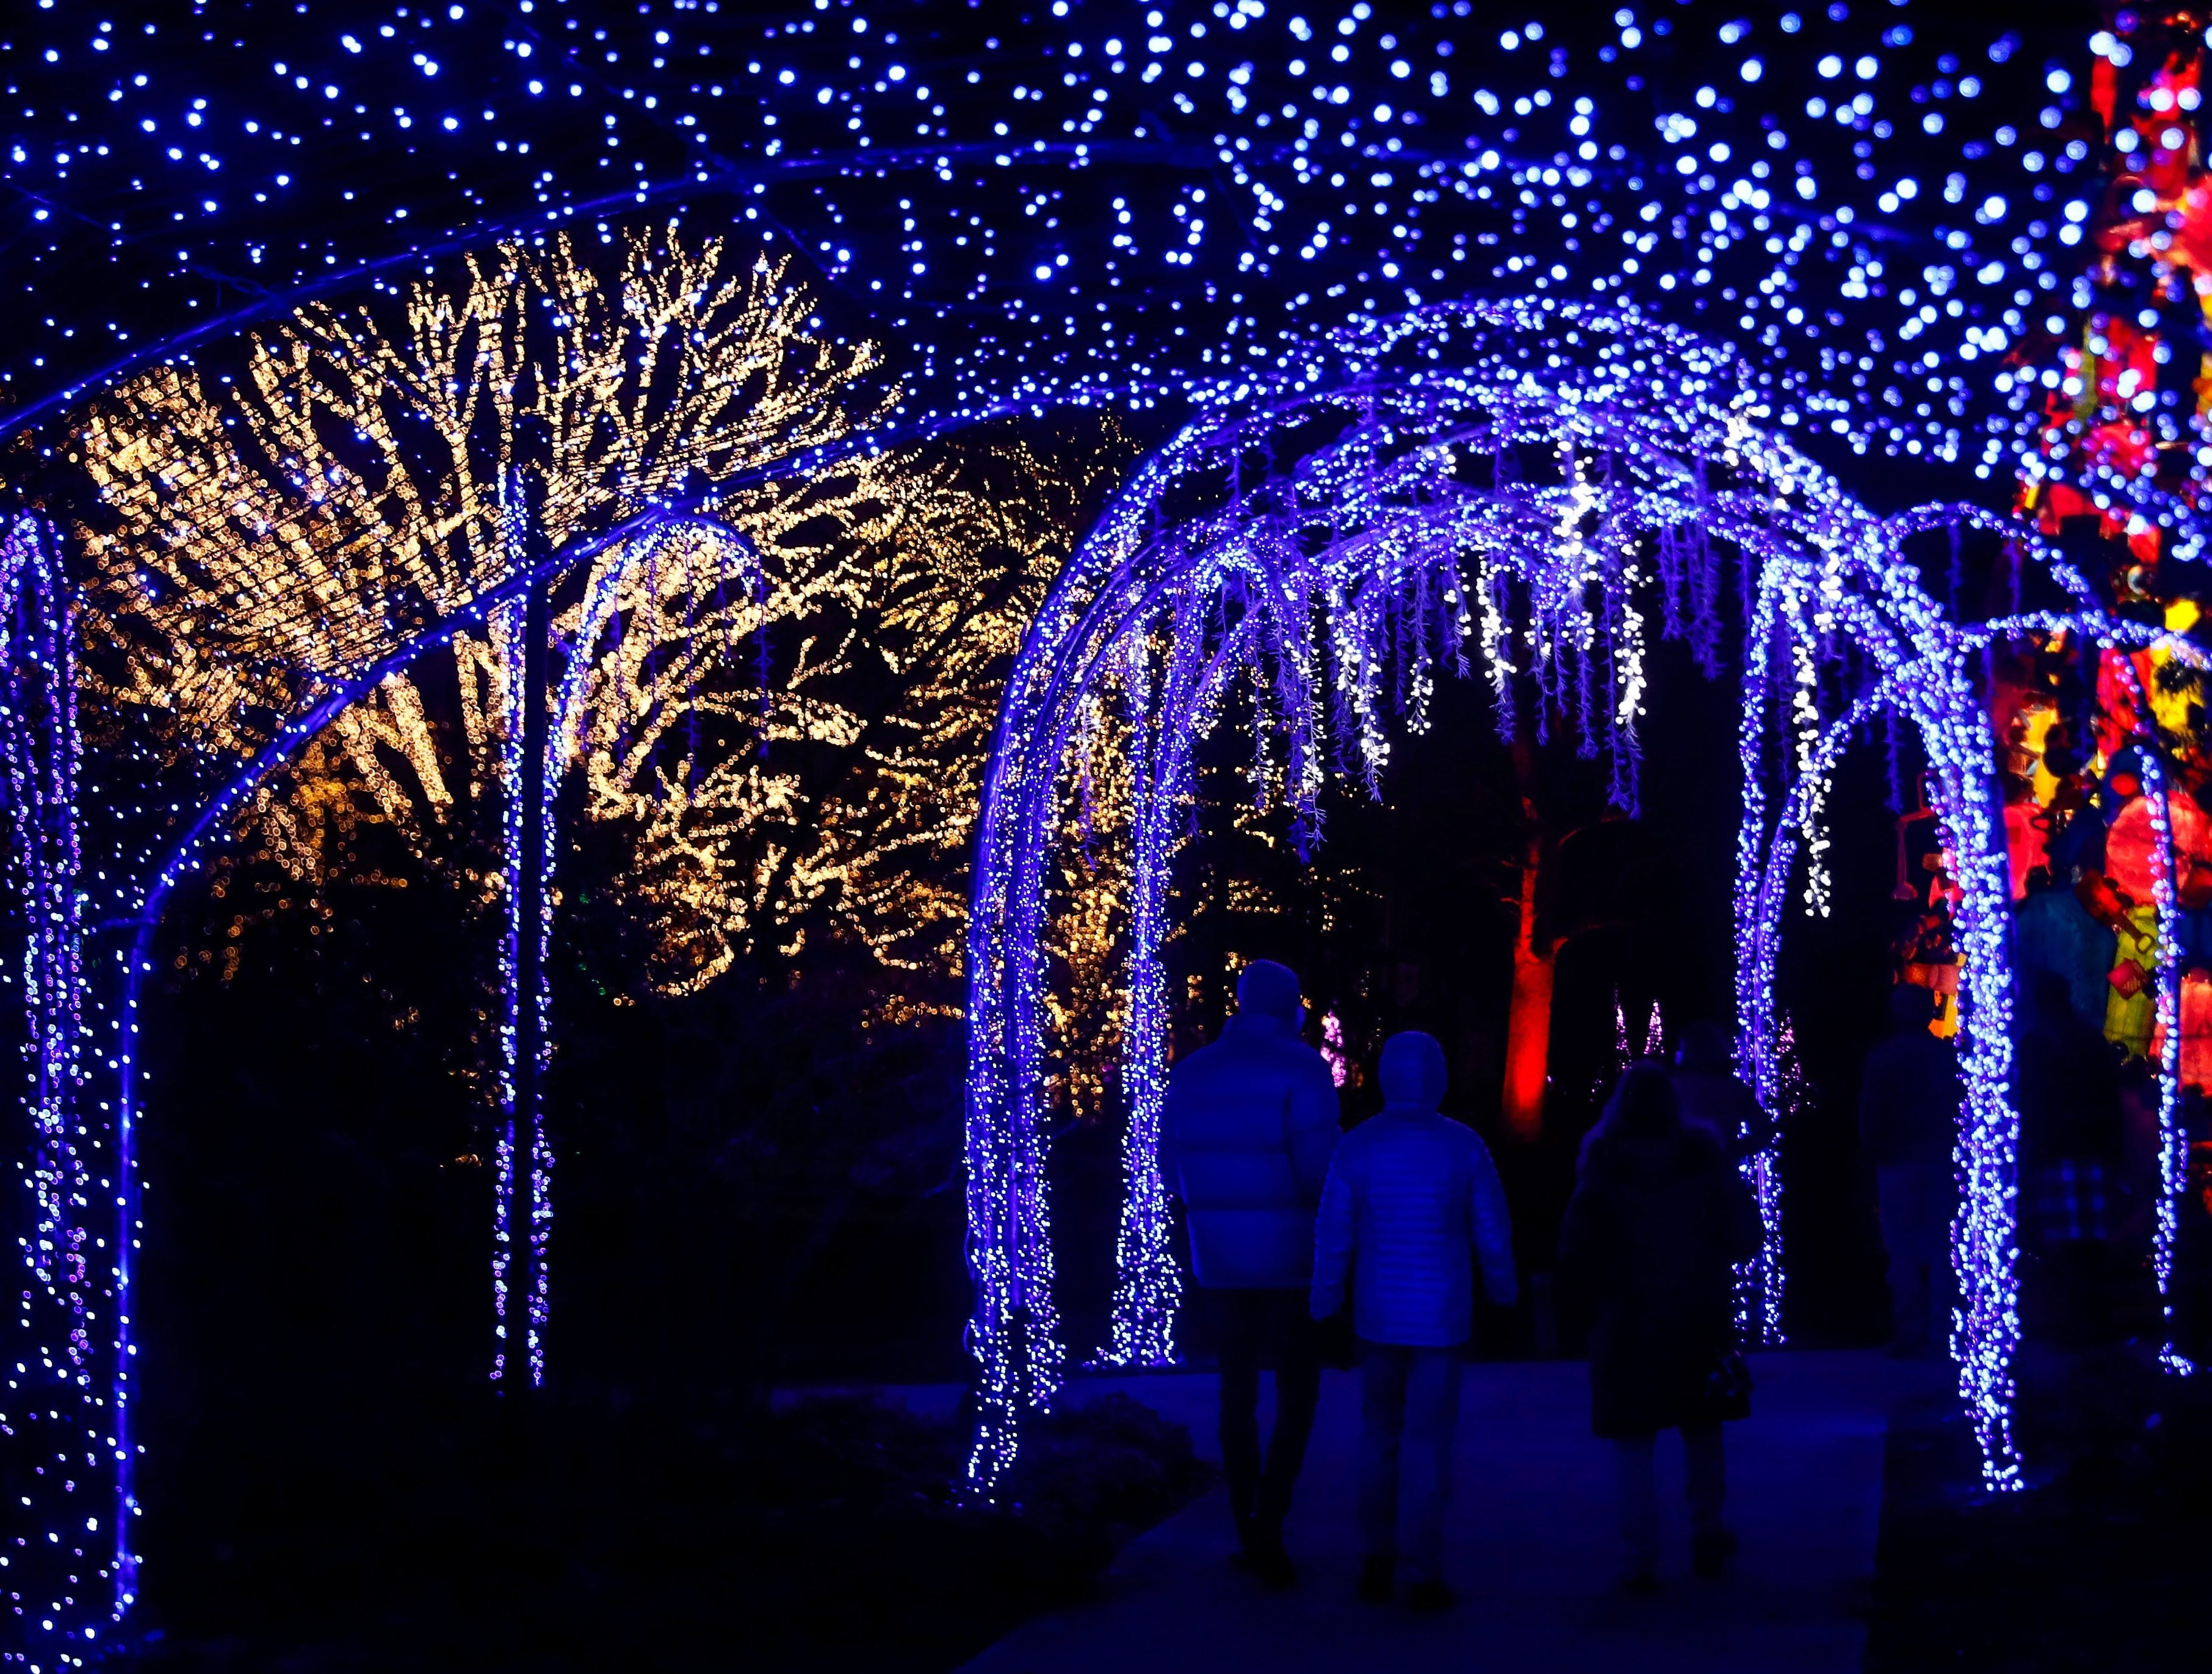 Newfields Winterlights 2020: How to get tickets and what to know